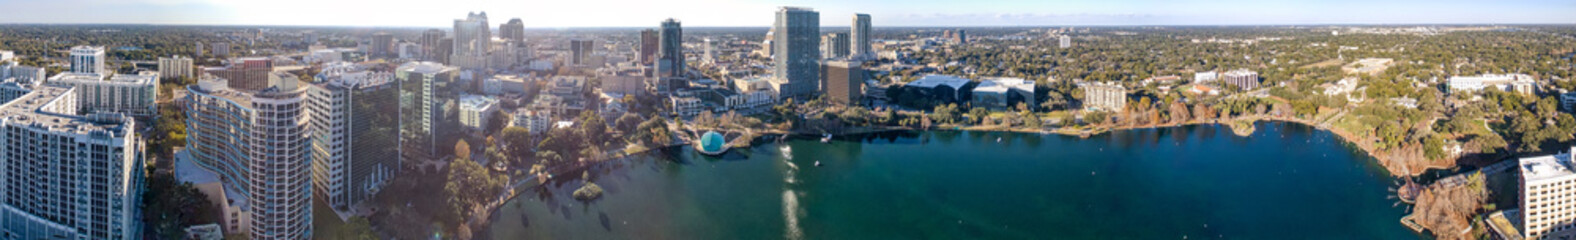 Wall Mural - ORLANDO, FL - FEBRUARY 2016: Panoramic aerial view of city skyline at sunset. Orlando is a famous destination in Florida